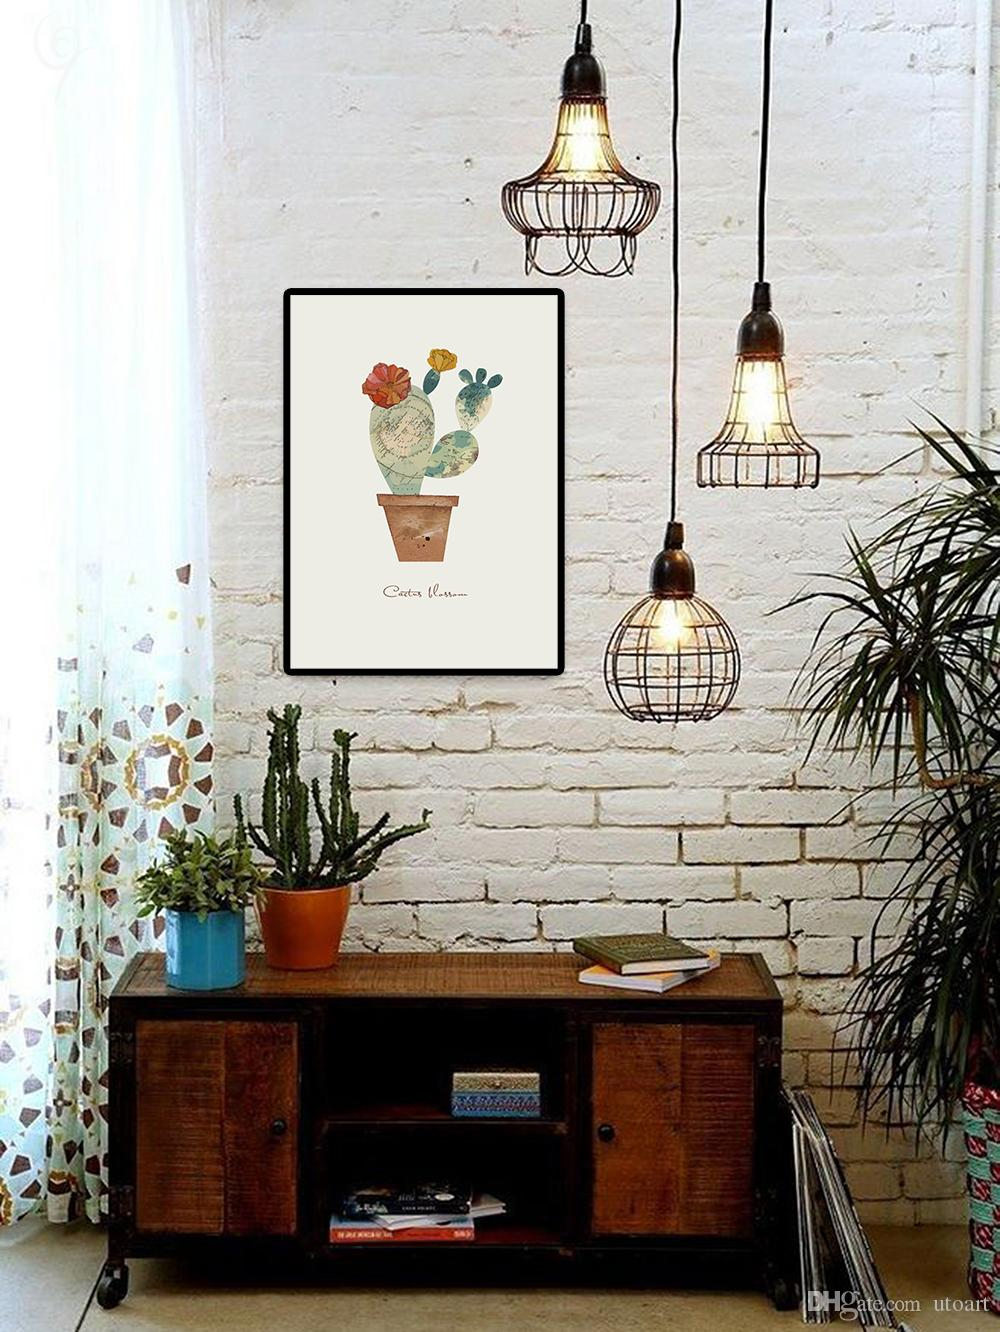 Impression Leafy Cactus Wall Painting Green Cactus Printed Canvas Painting Wall Art Home Decoration Dining Room